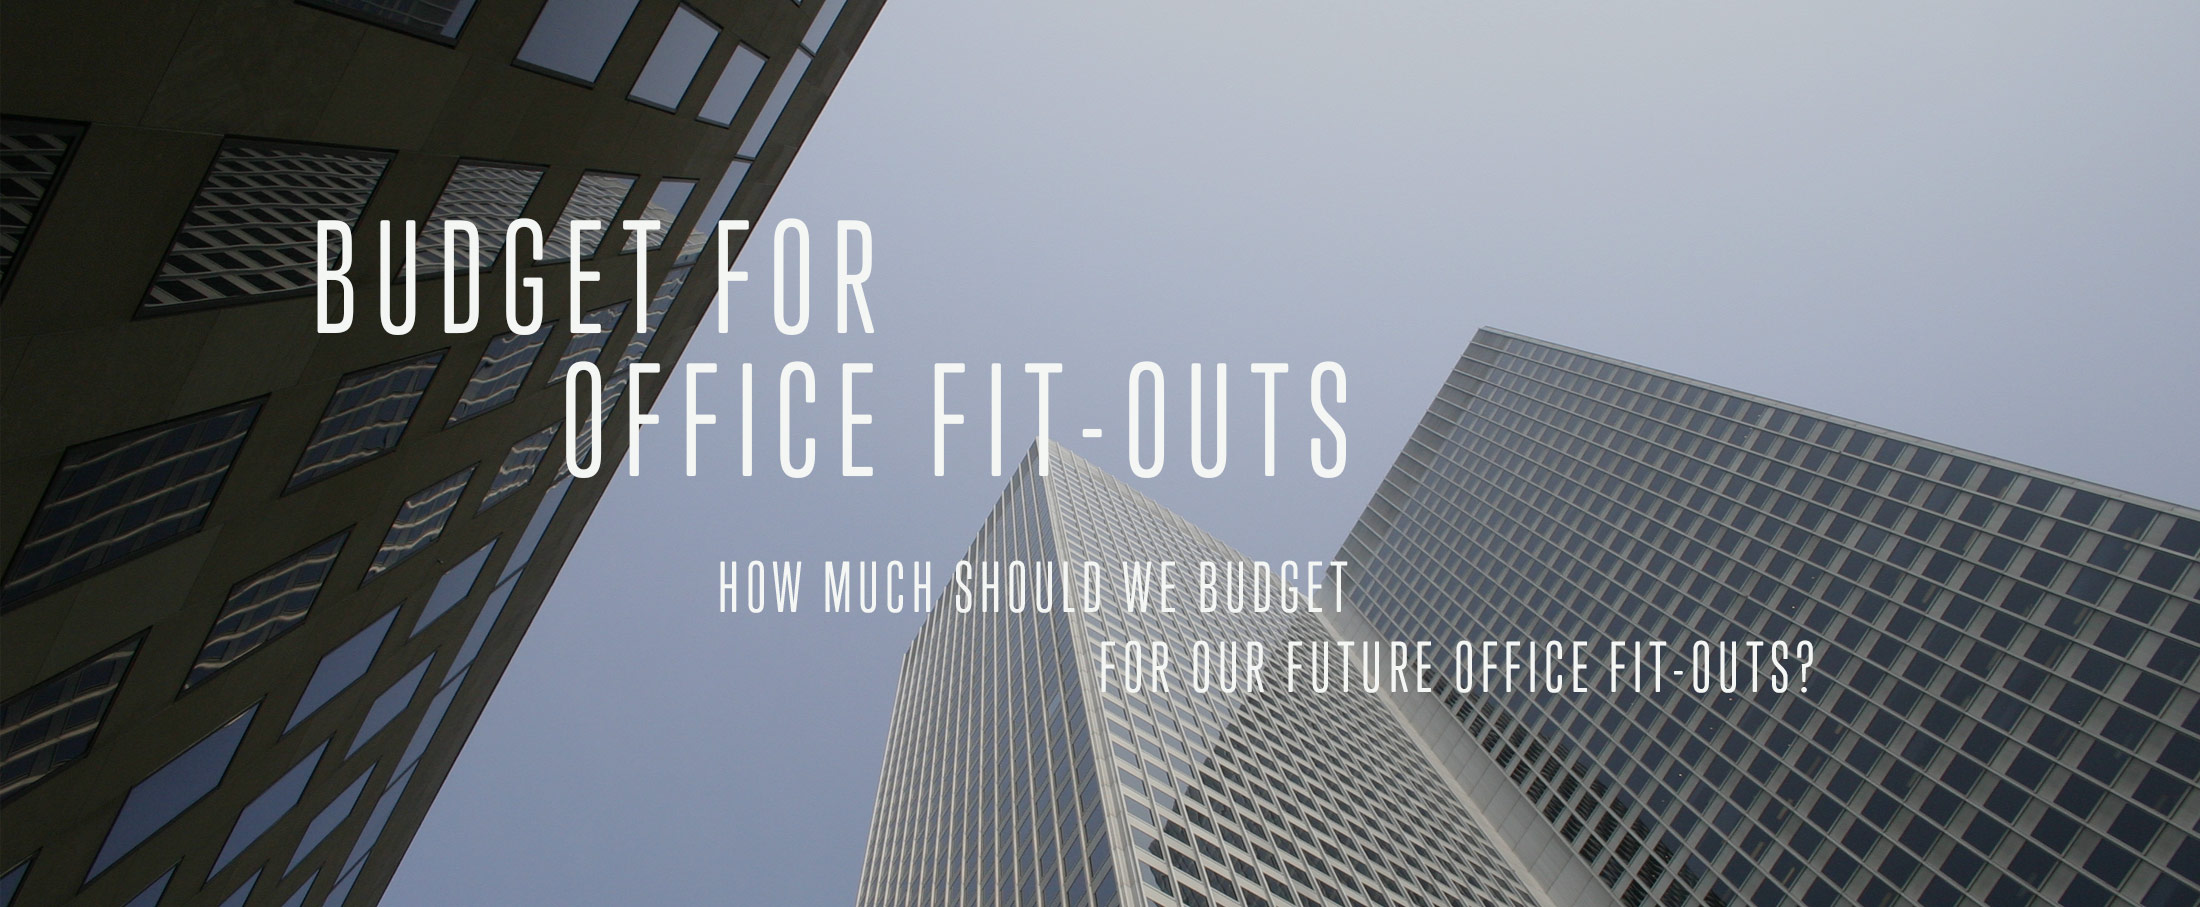 Budget for office fitouts